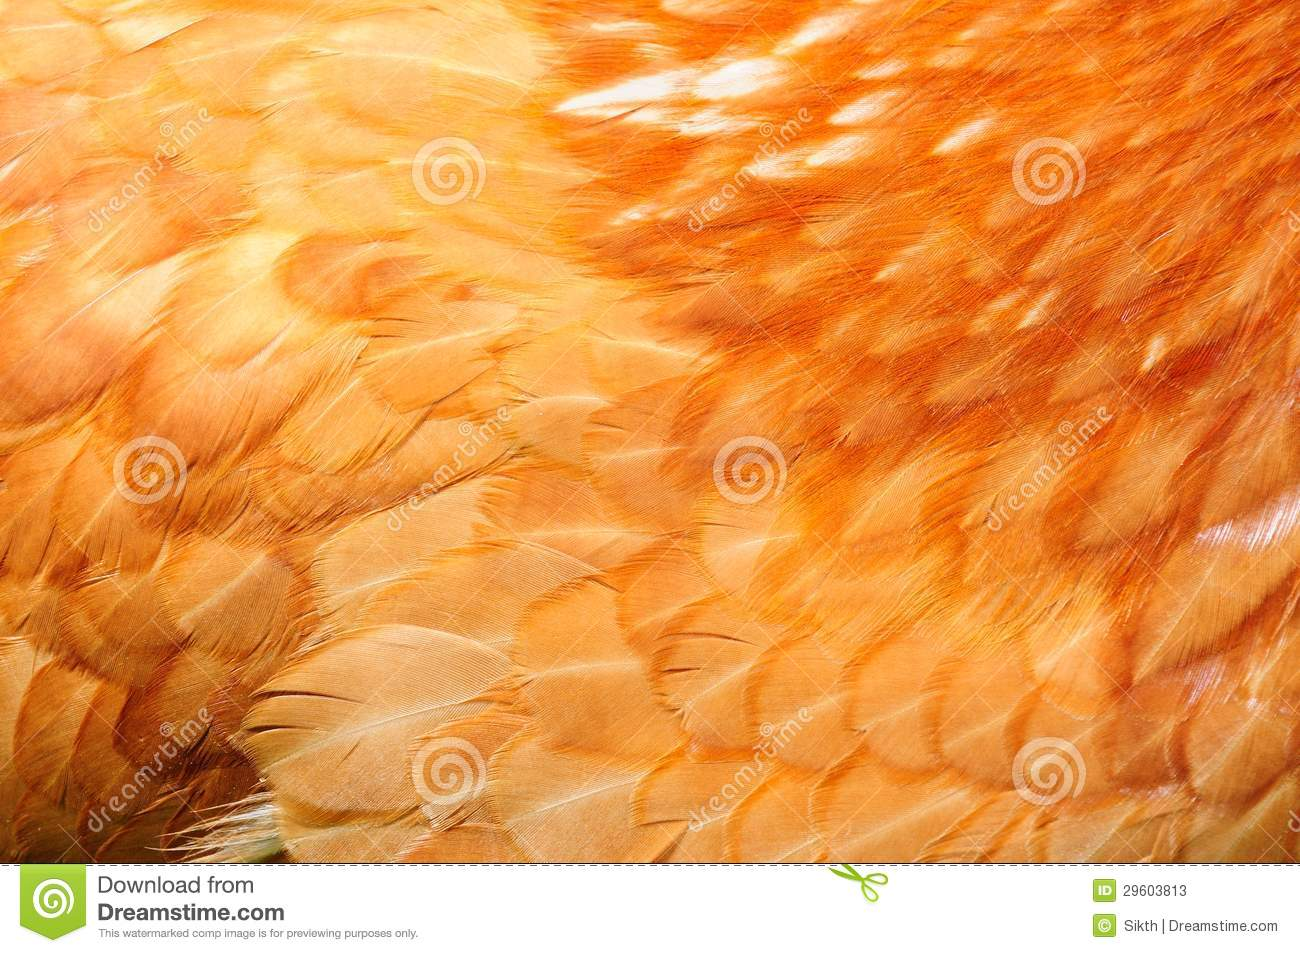 Red Chicken Feathers Close-Up Stock Photos - Image: 29603813